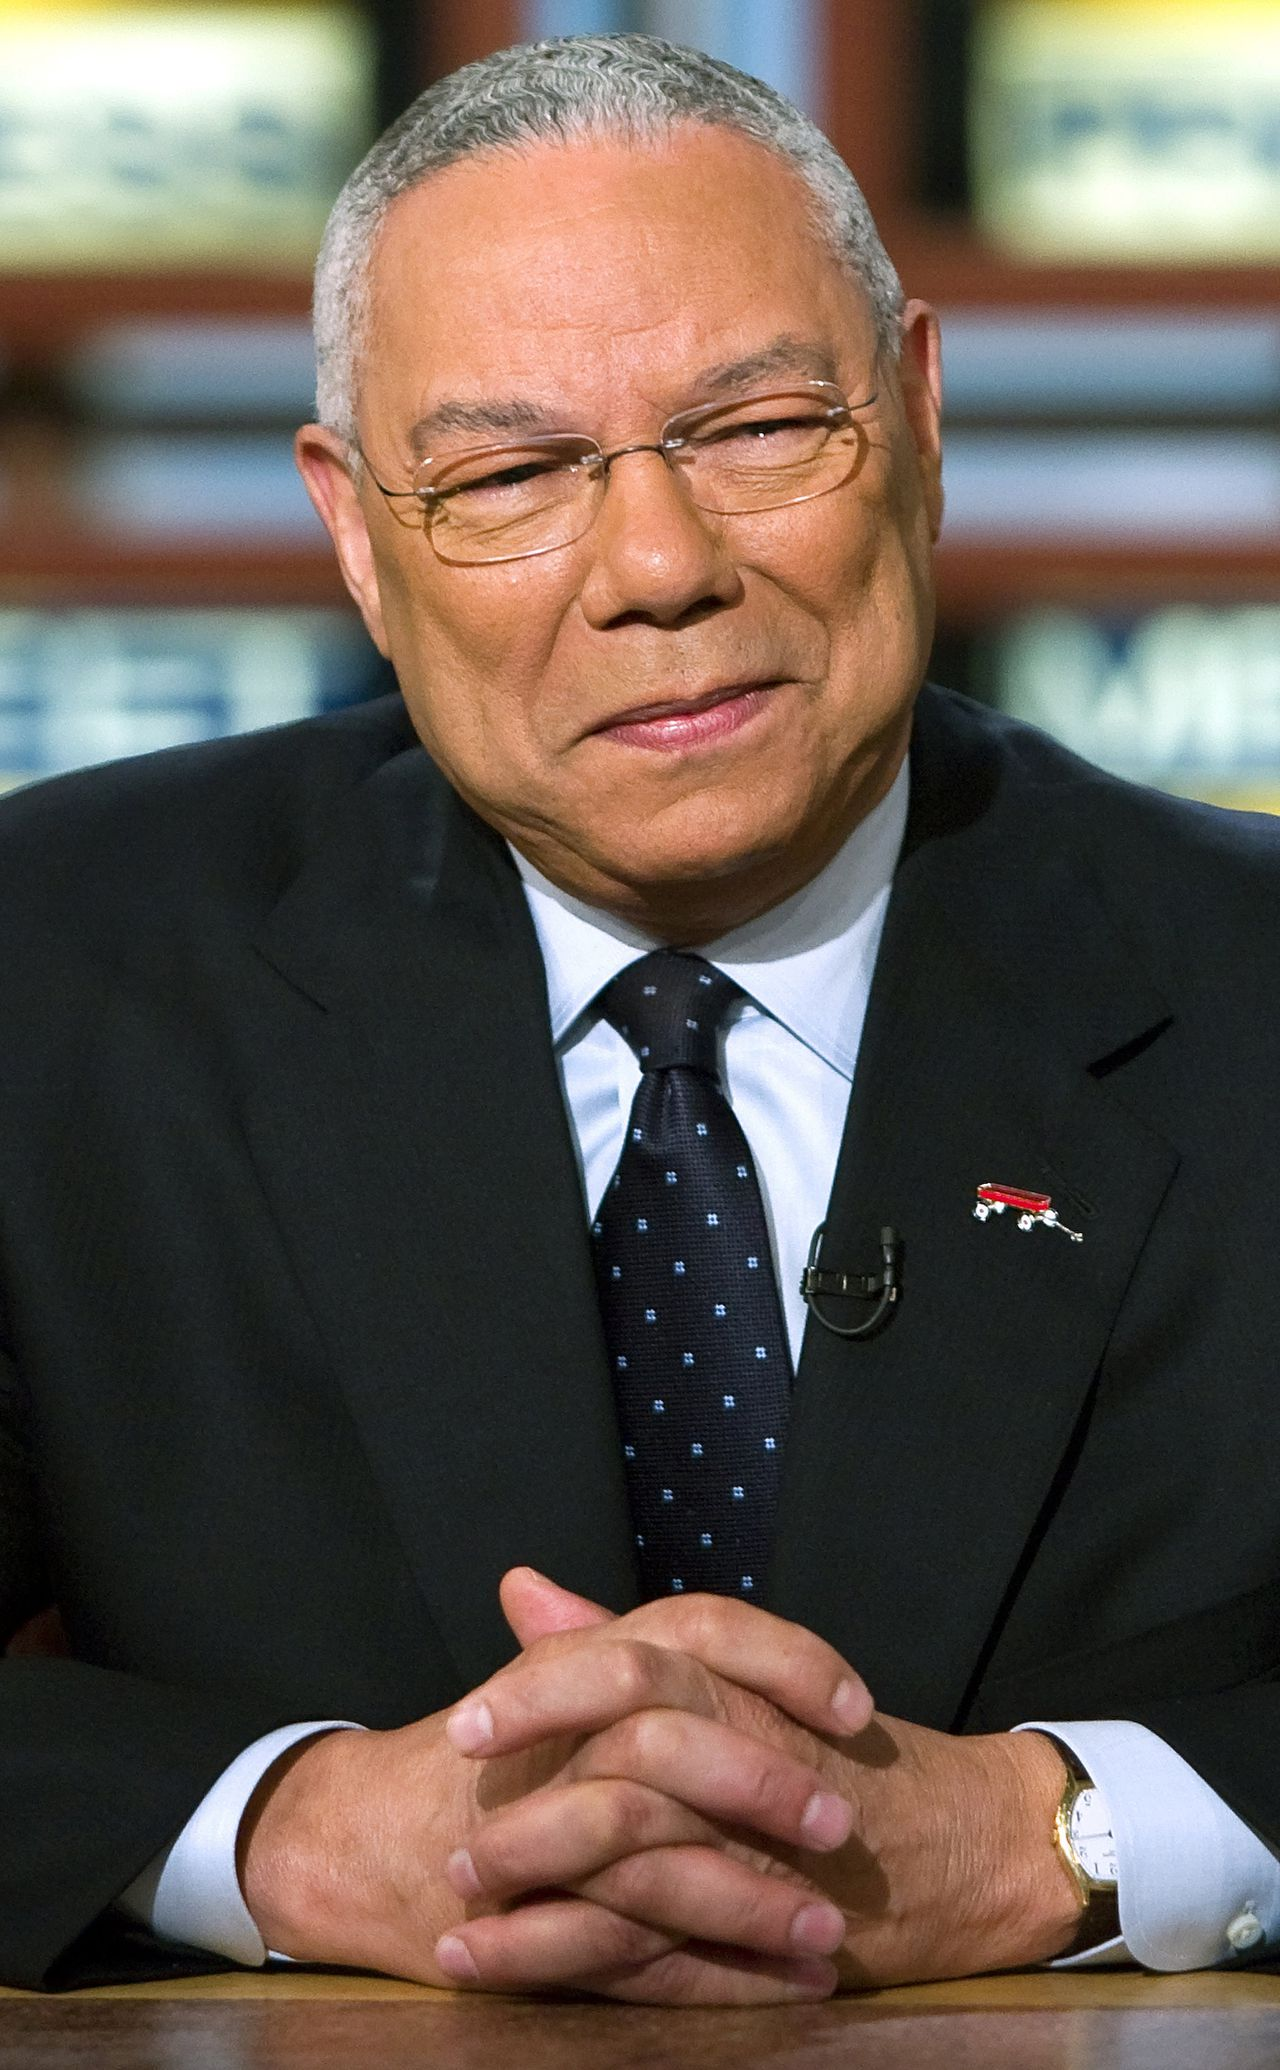 "In this photograph provided by ""Meet the Press,"" former Secretary of State Colin Powell appears during the taping of ""Meet the Press'"" Sunday, June 10, 2007, at the NBC studios in Washington. (AP Photo/Meet The Press, Brendan Smialowski) ** NO SALES, NO ARCHIVE, MUST USE BEFORE JUNE 17, 2007, MUST CREDIT ""MEET THE PRESS"" **"